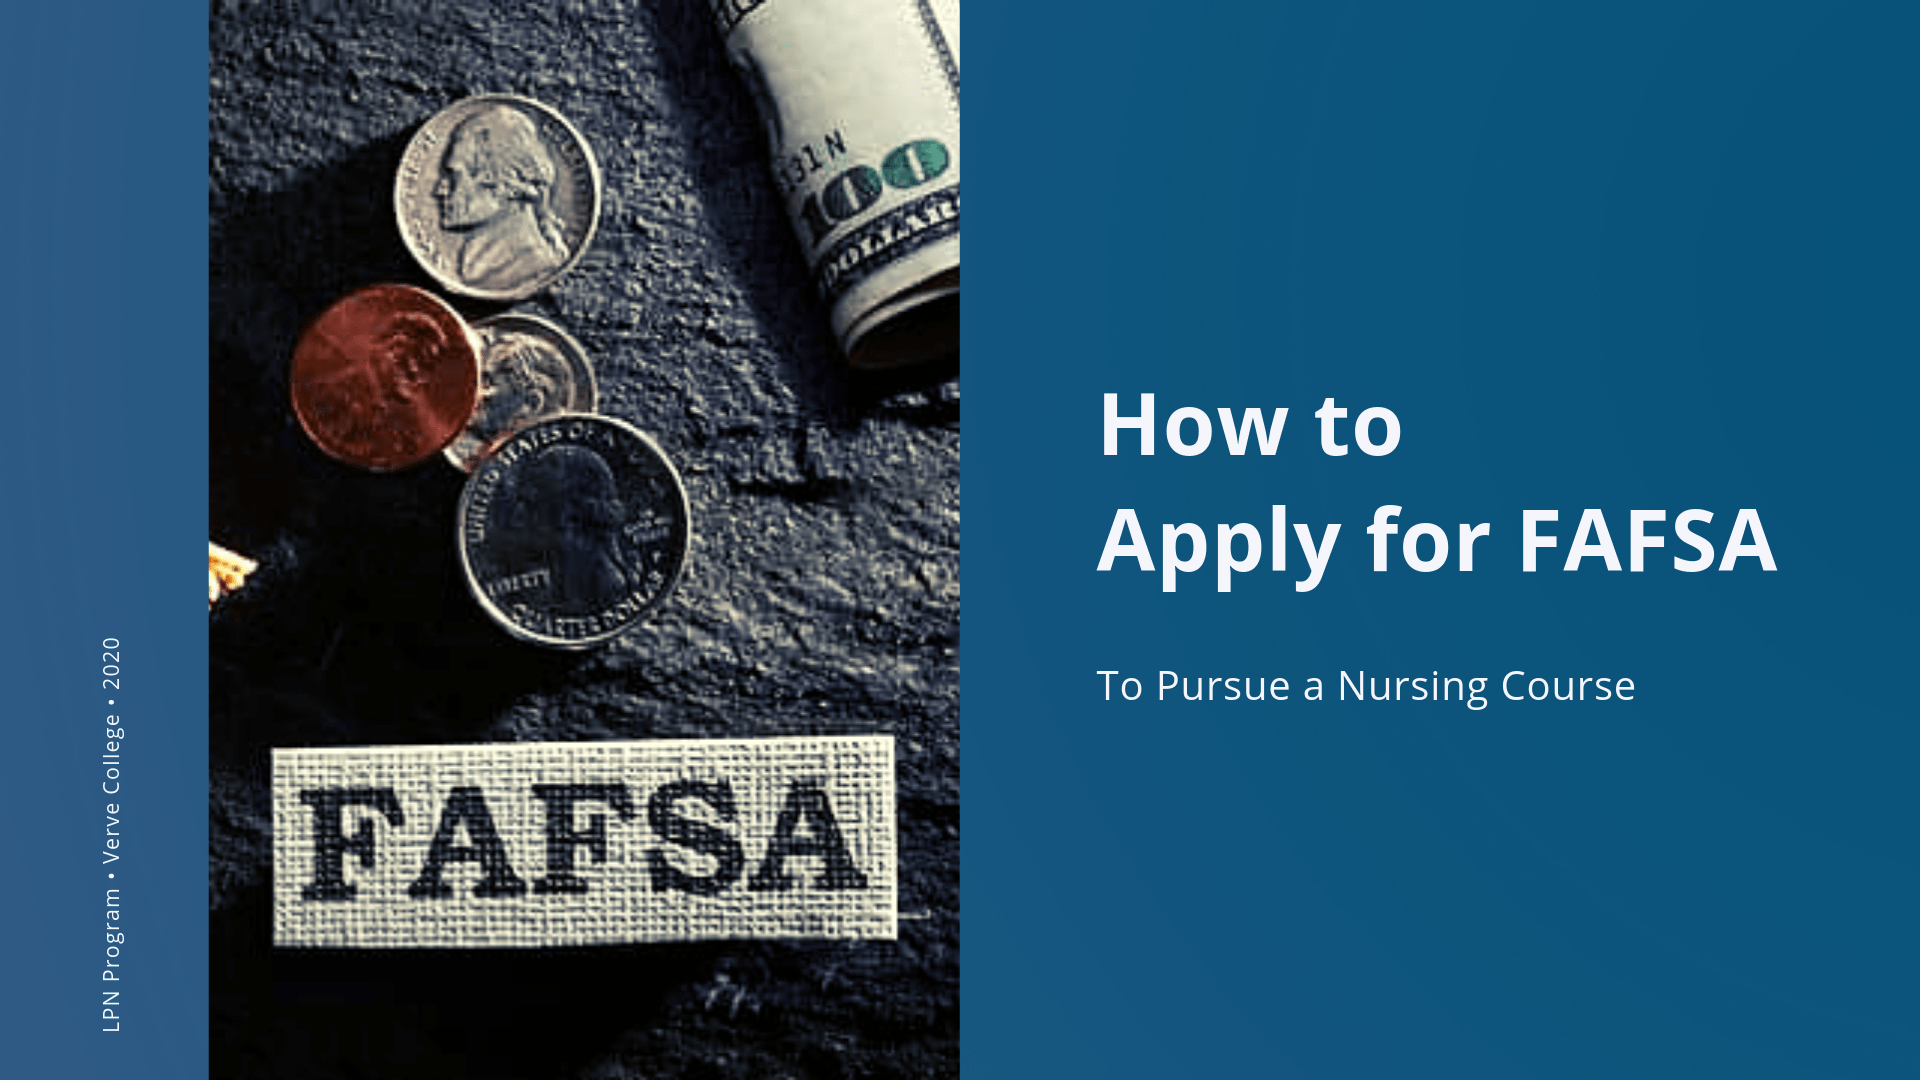 How to Apply for FAFSA To Pursue a Nursing Course